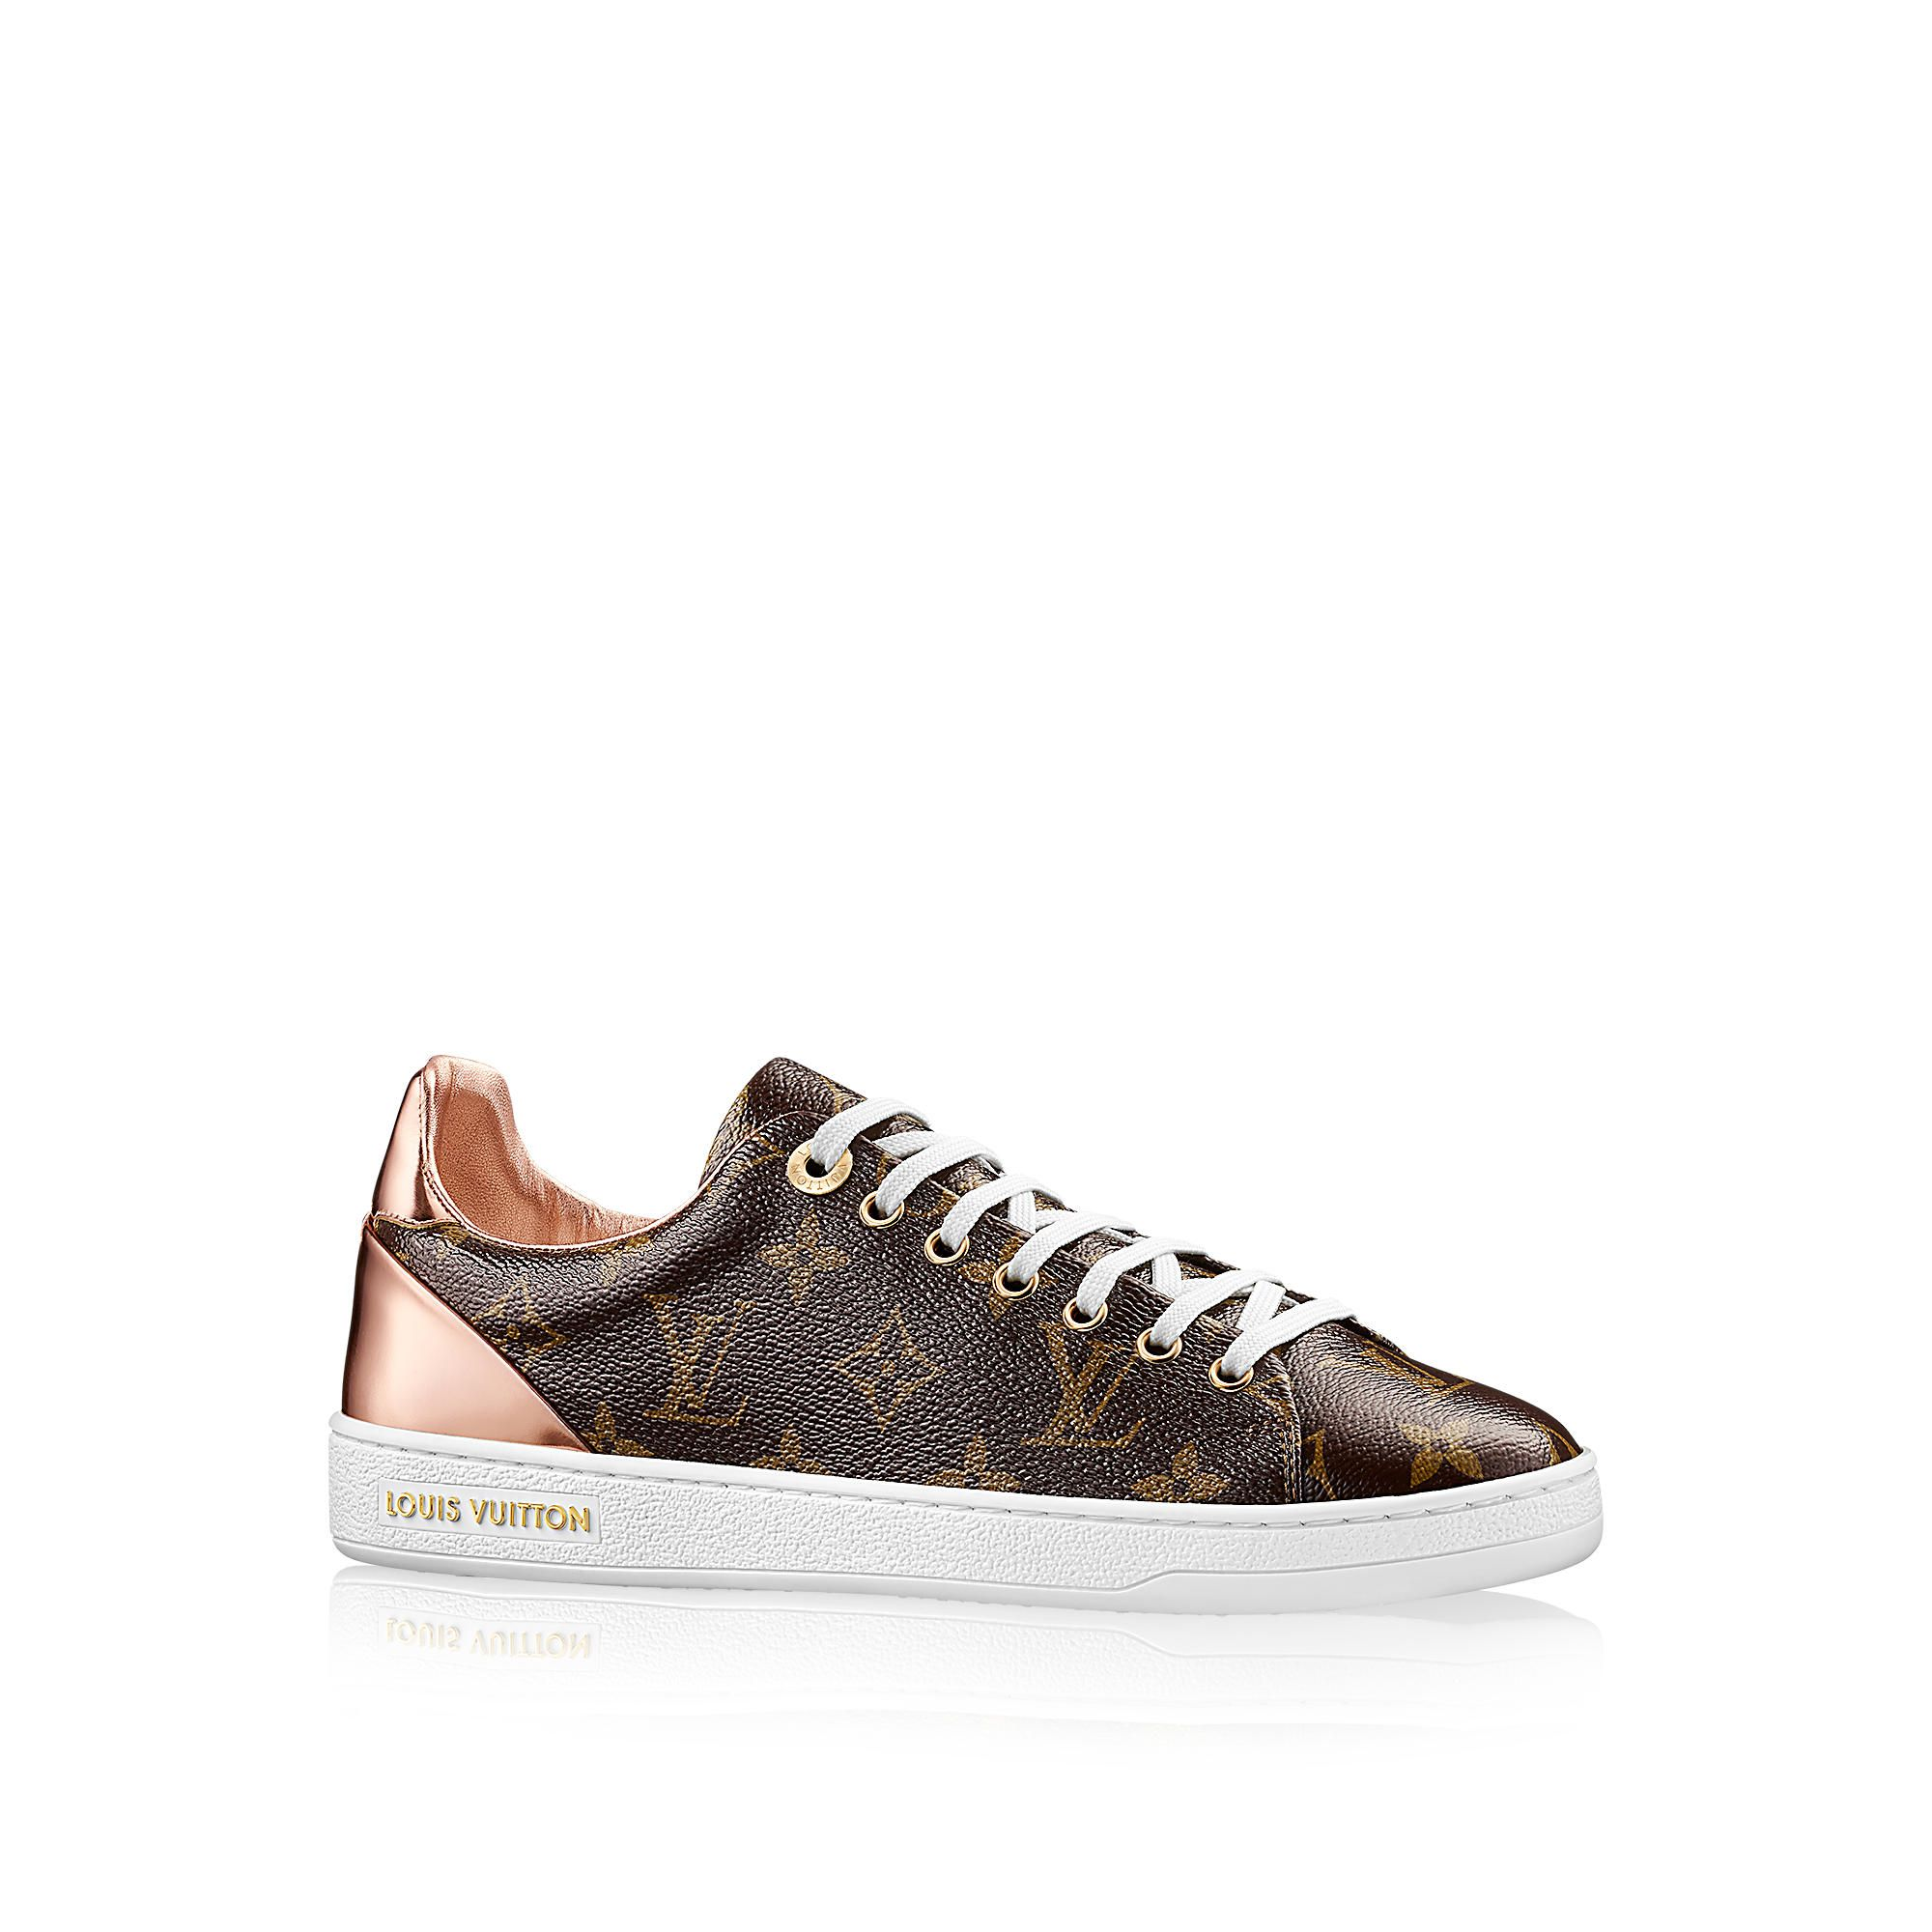 Frontrow Sneaker via Louis Vuitton   shopping wishlist - luxury ... b7a207569bc